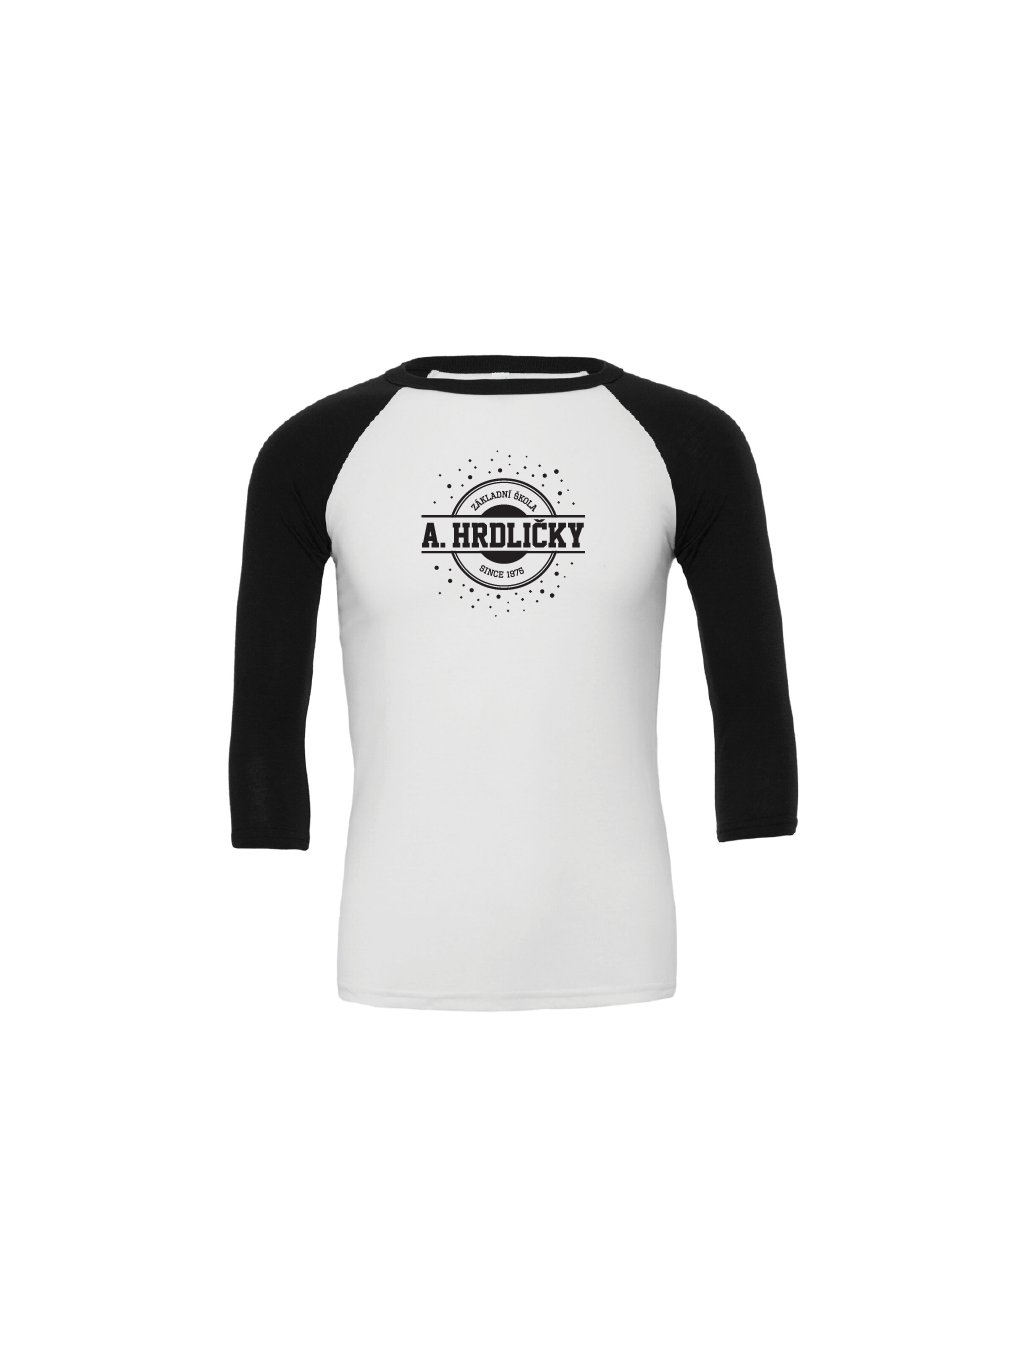 Baseball tee white black@300x